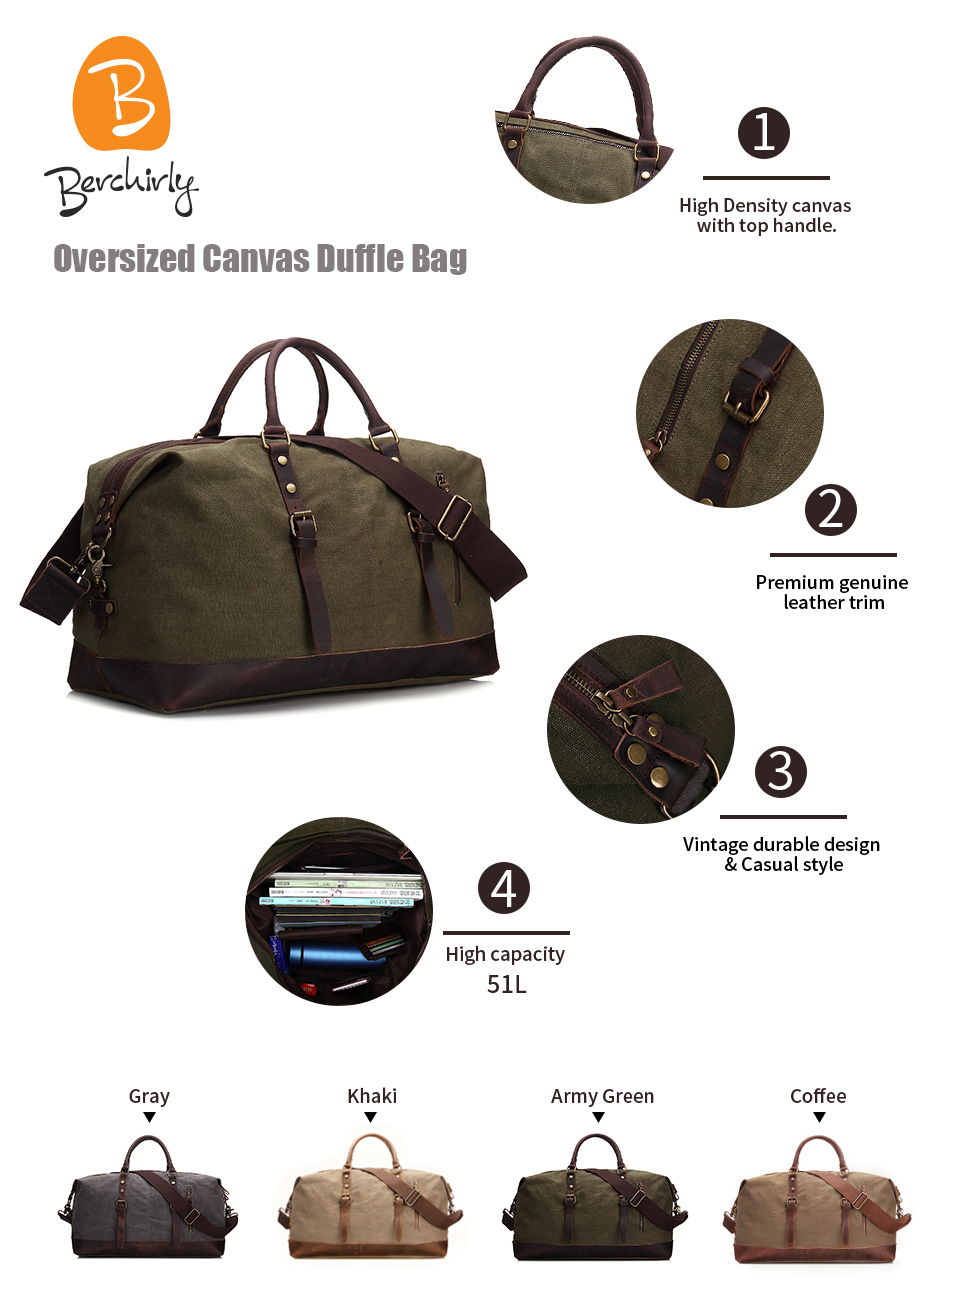 063858b9c4 Berchirly Oversized Canvas Leather Travel Tote Duffel Shoulder Handbag  Weekend Bag Outdoor Luggage